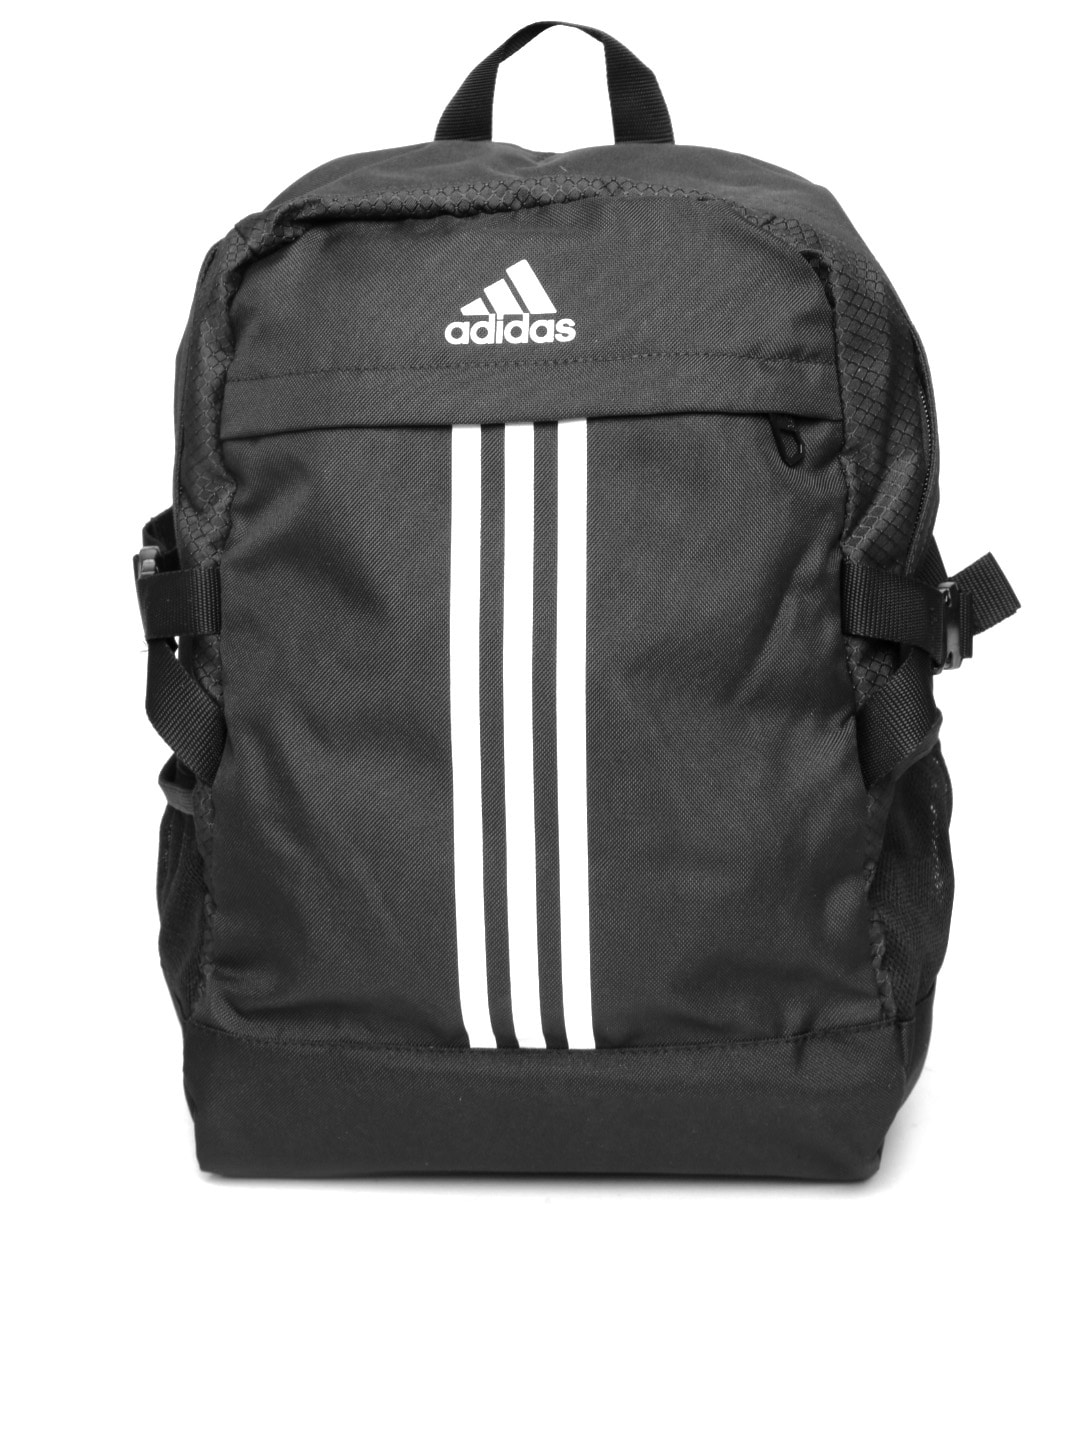 Adidas ax6936 Unisex Black Power Iii M Striped Backpack - Best Price ... 2f7636dda9e3e